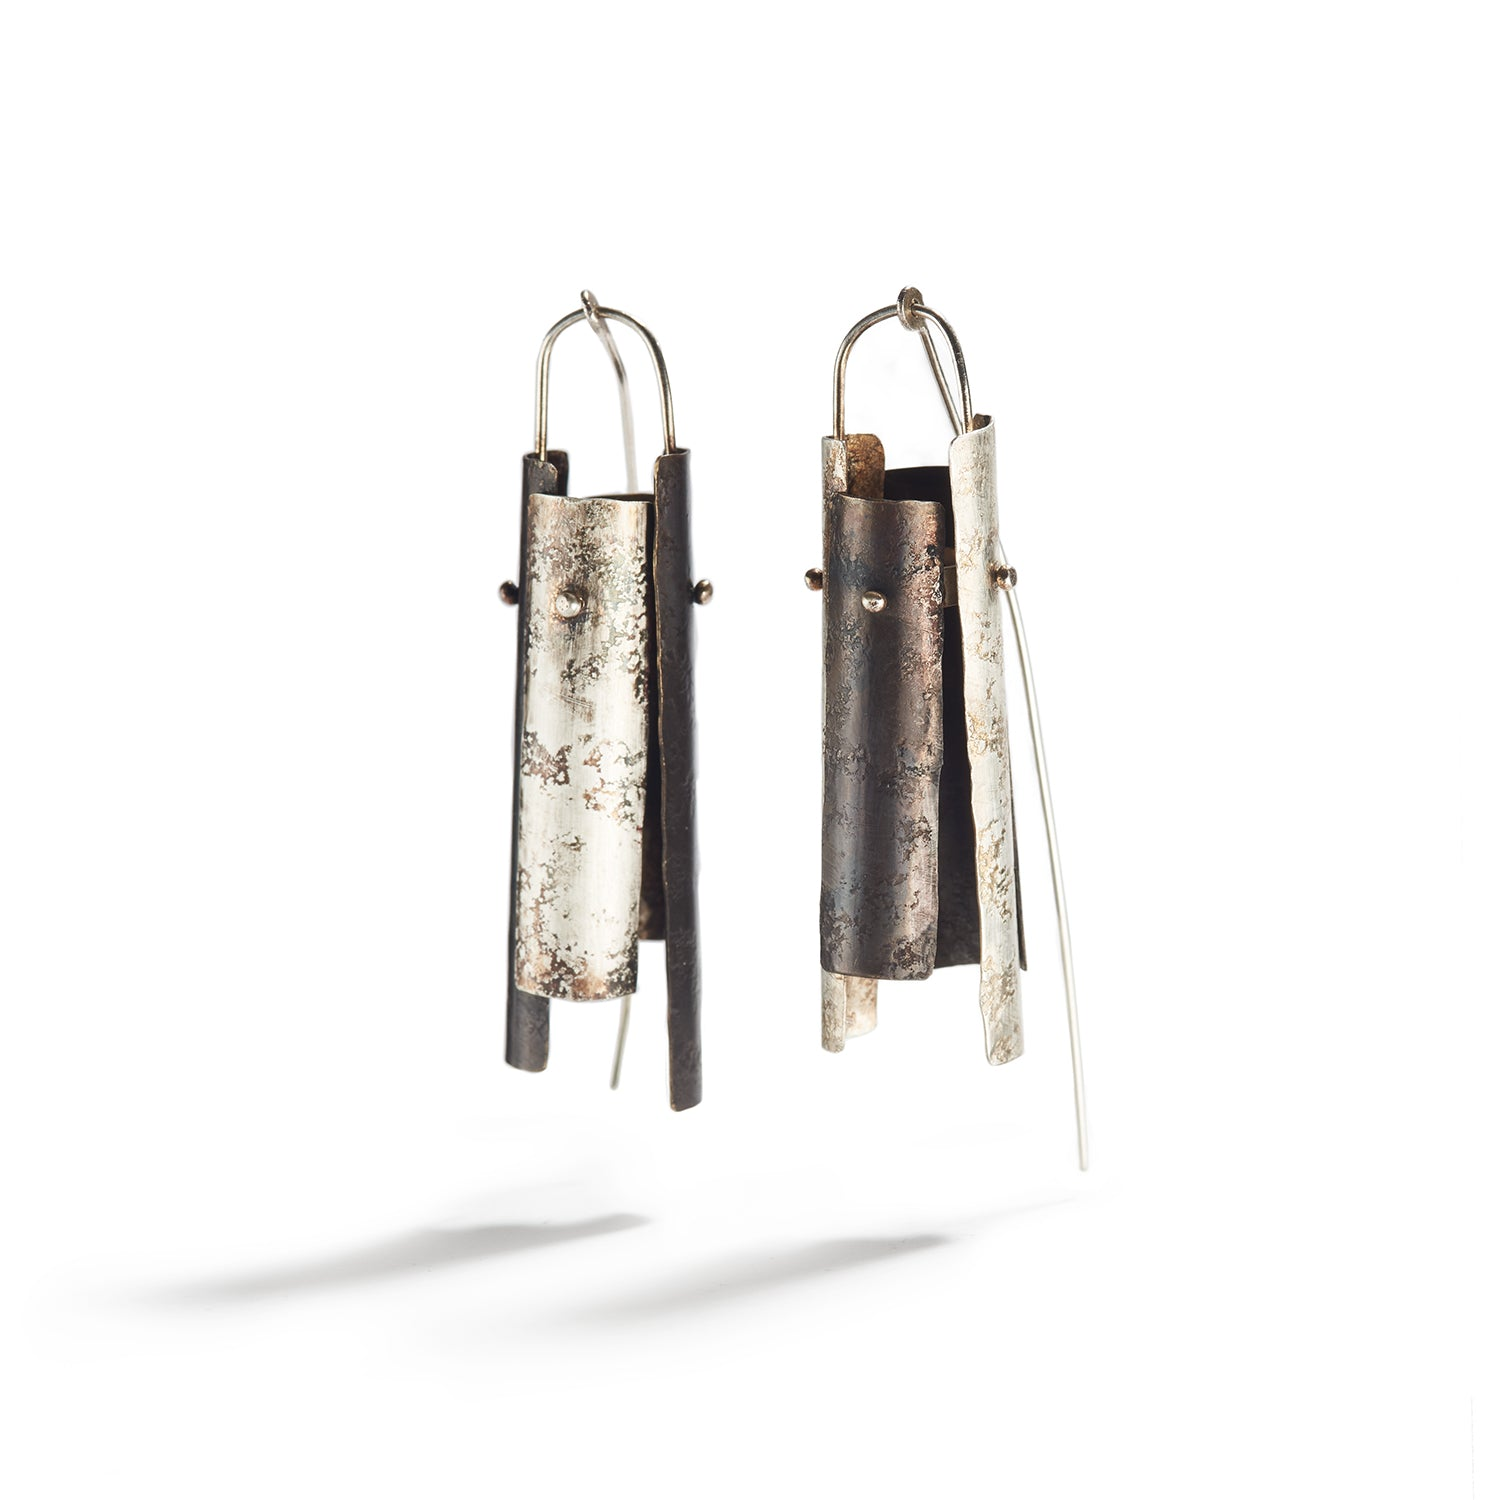 Patina'd Bronze and Silver Earrings